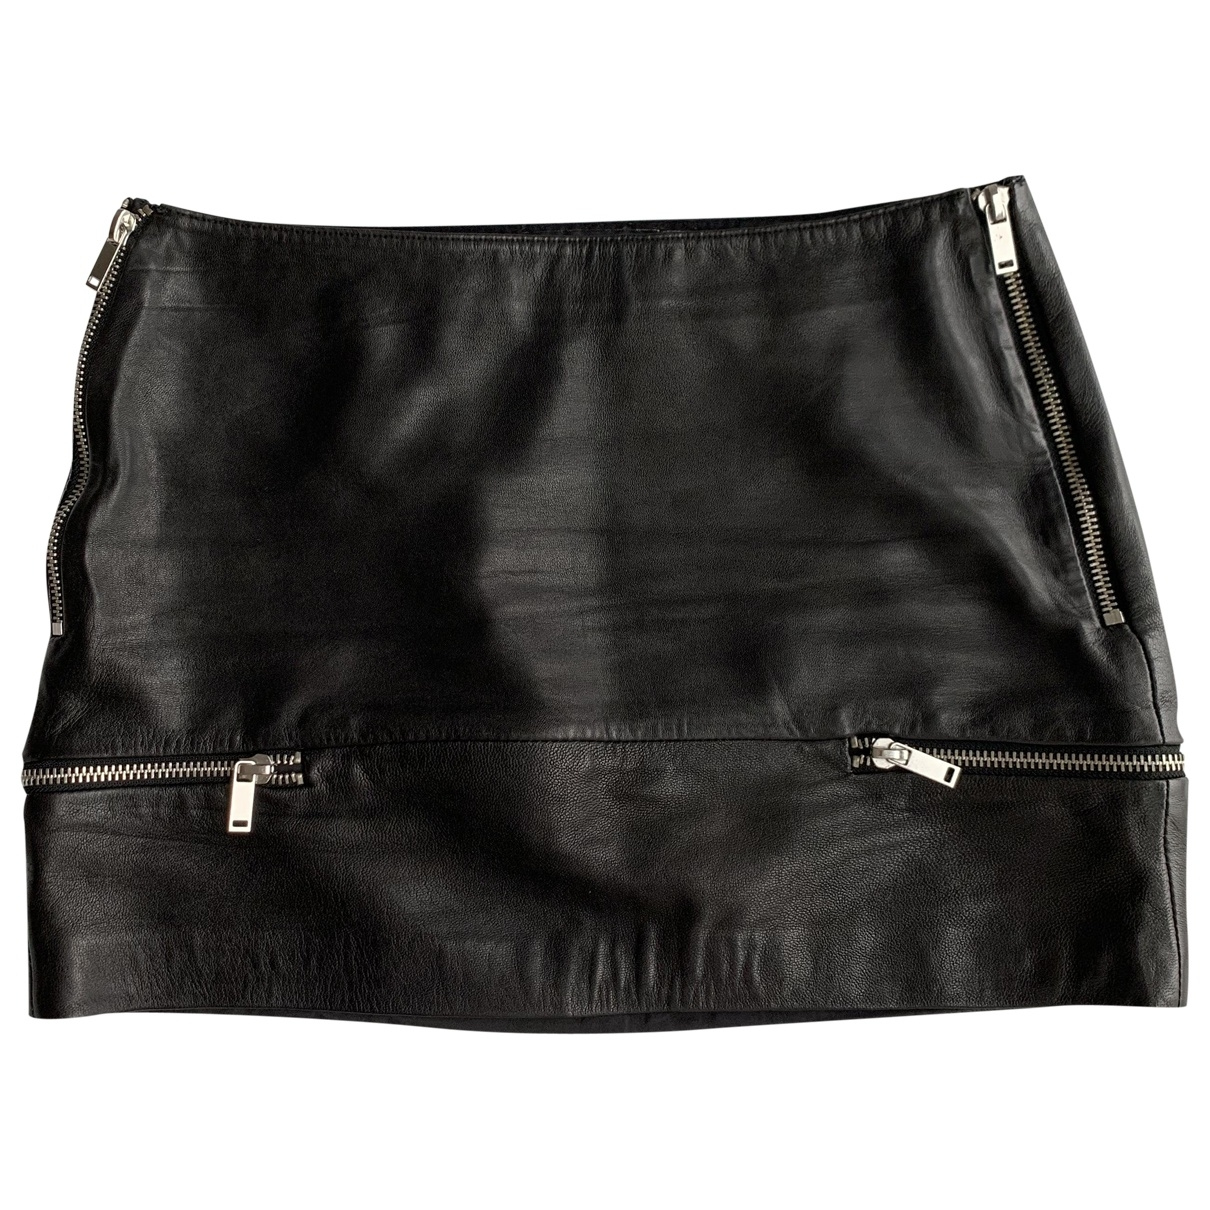 Zara \N Black Leather skirt for Women M International